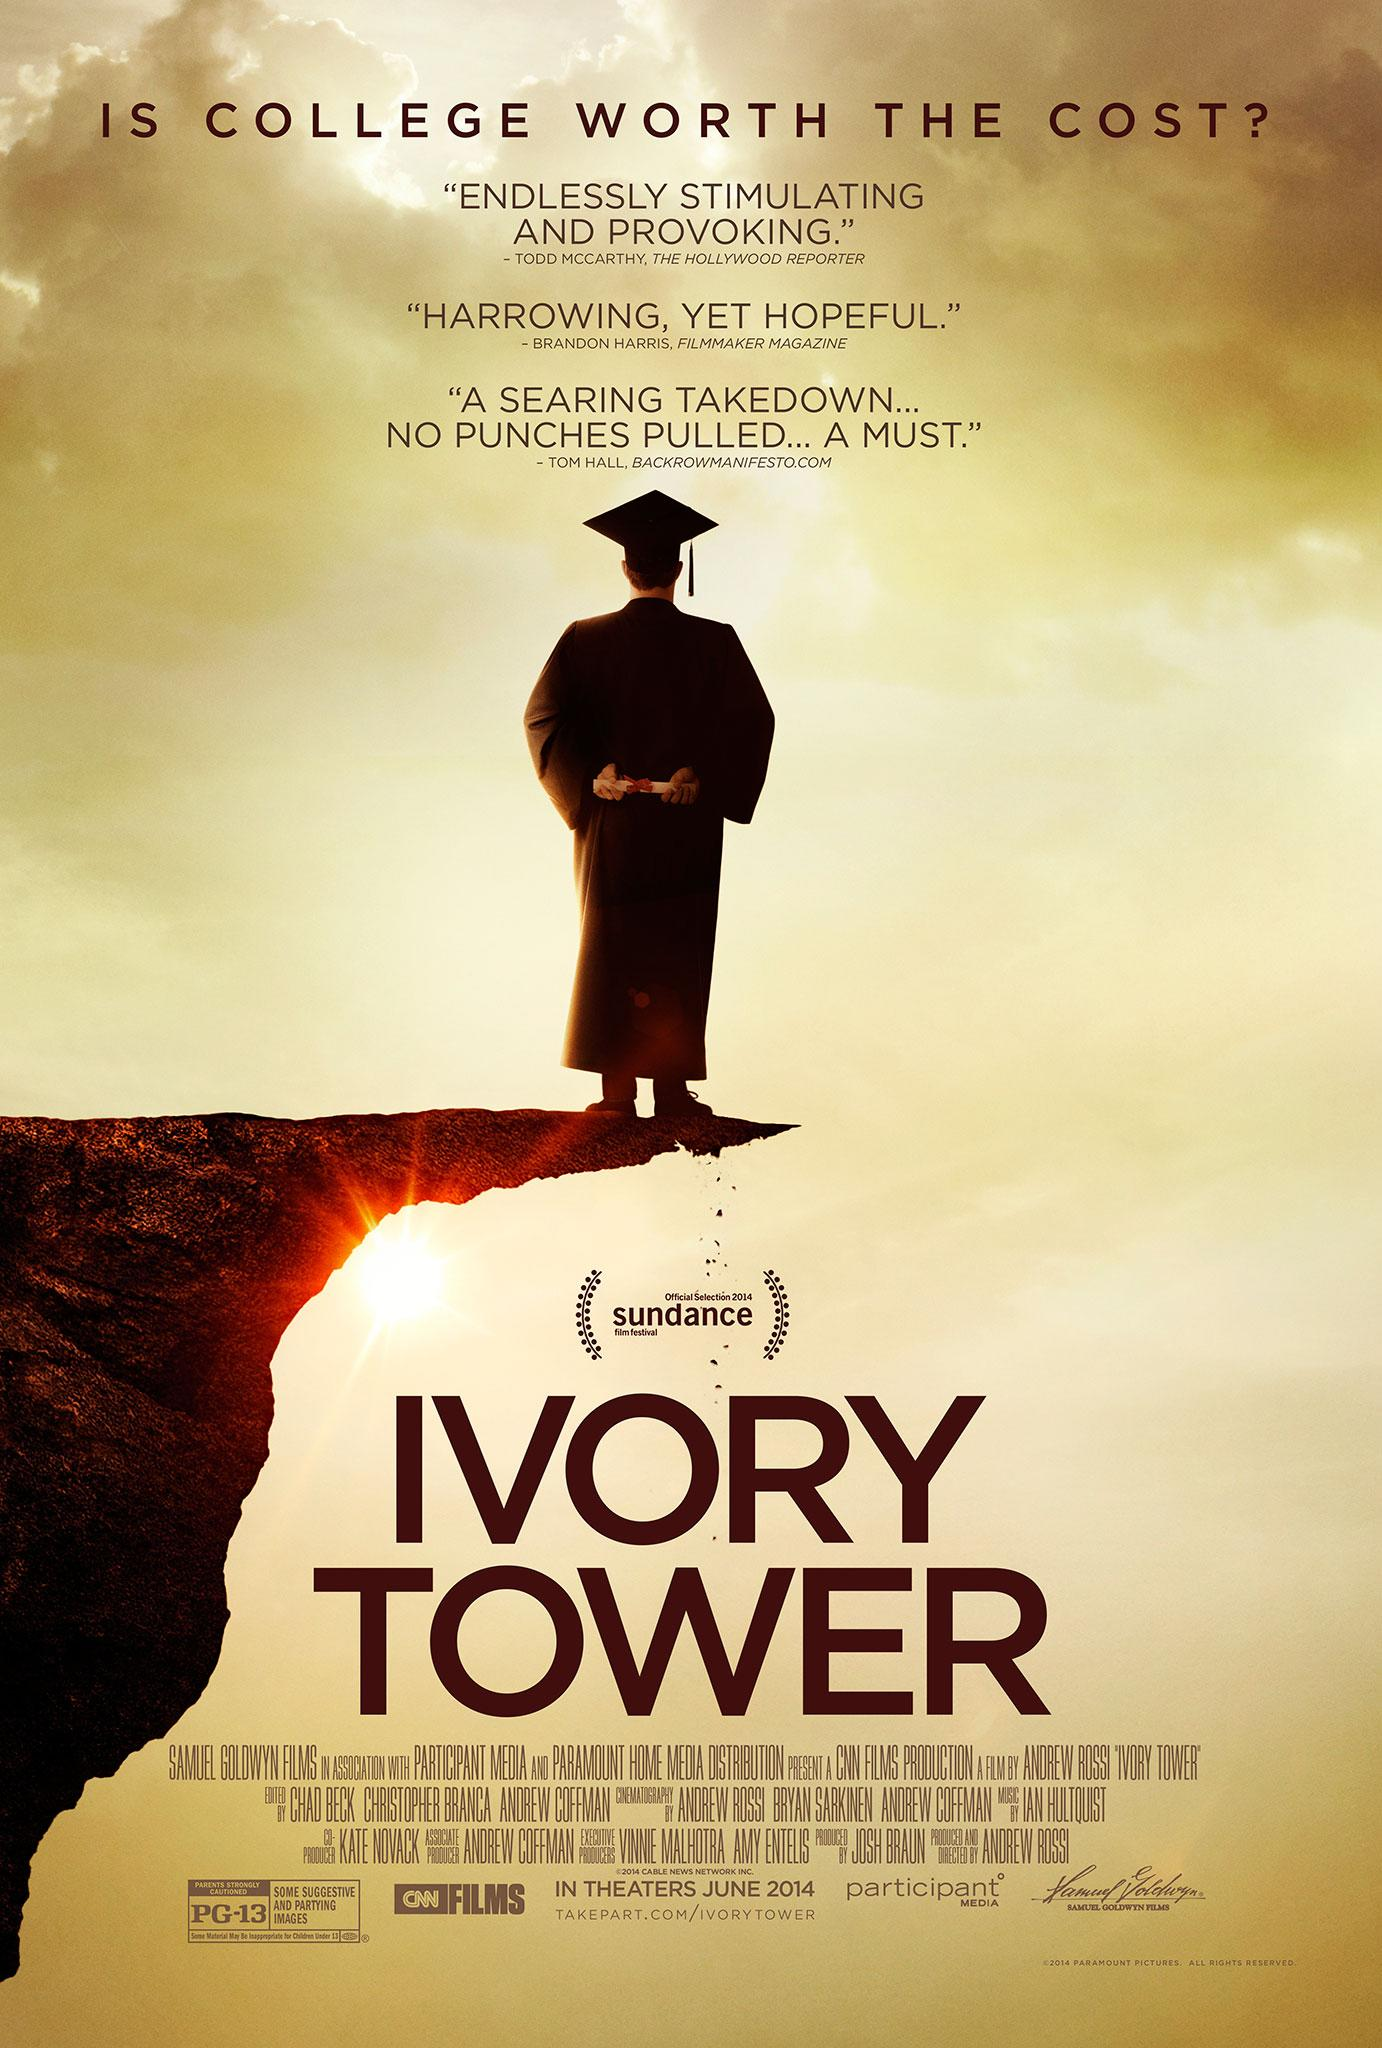 Ivory Tower Trailer Hard Lessons In The High Cost Of Higher Education